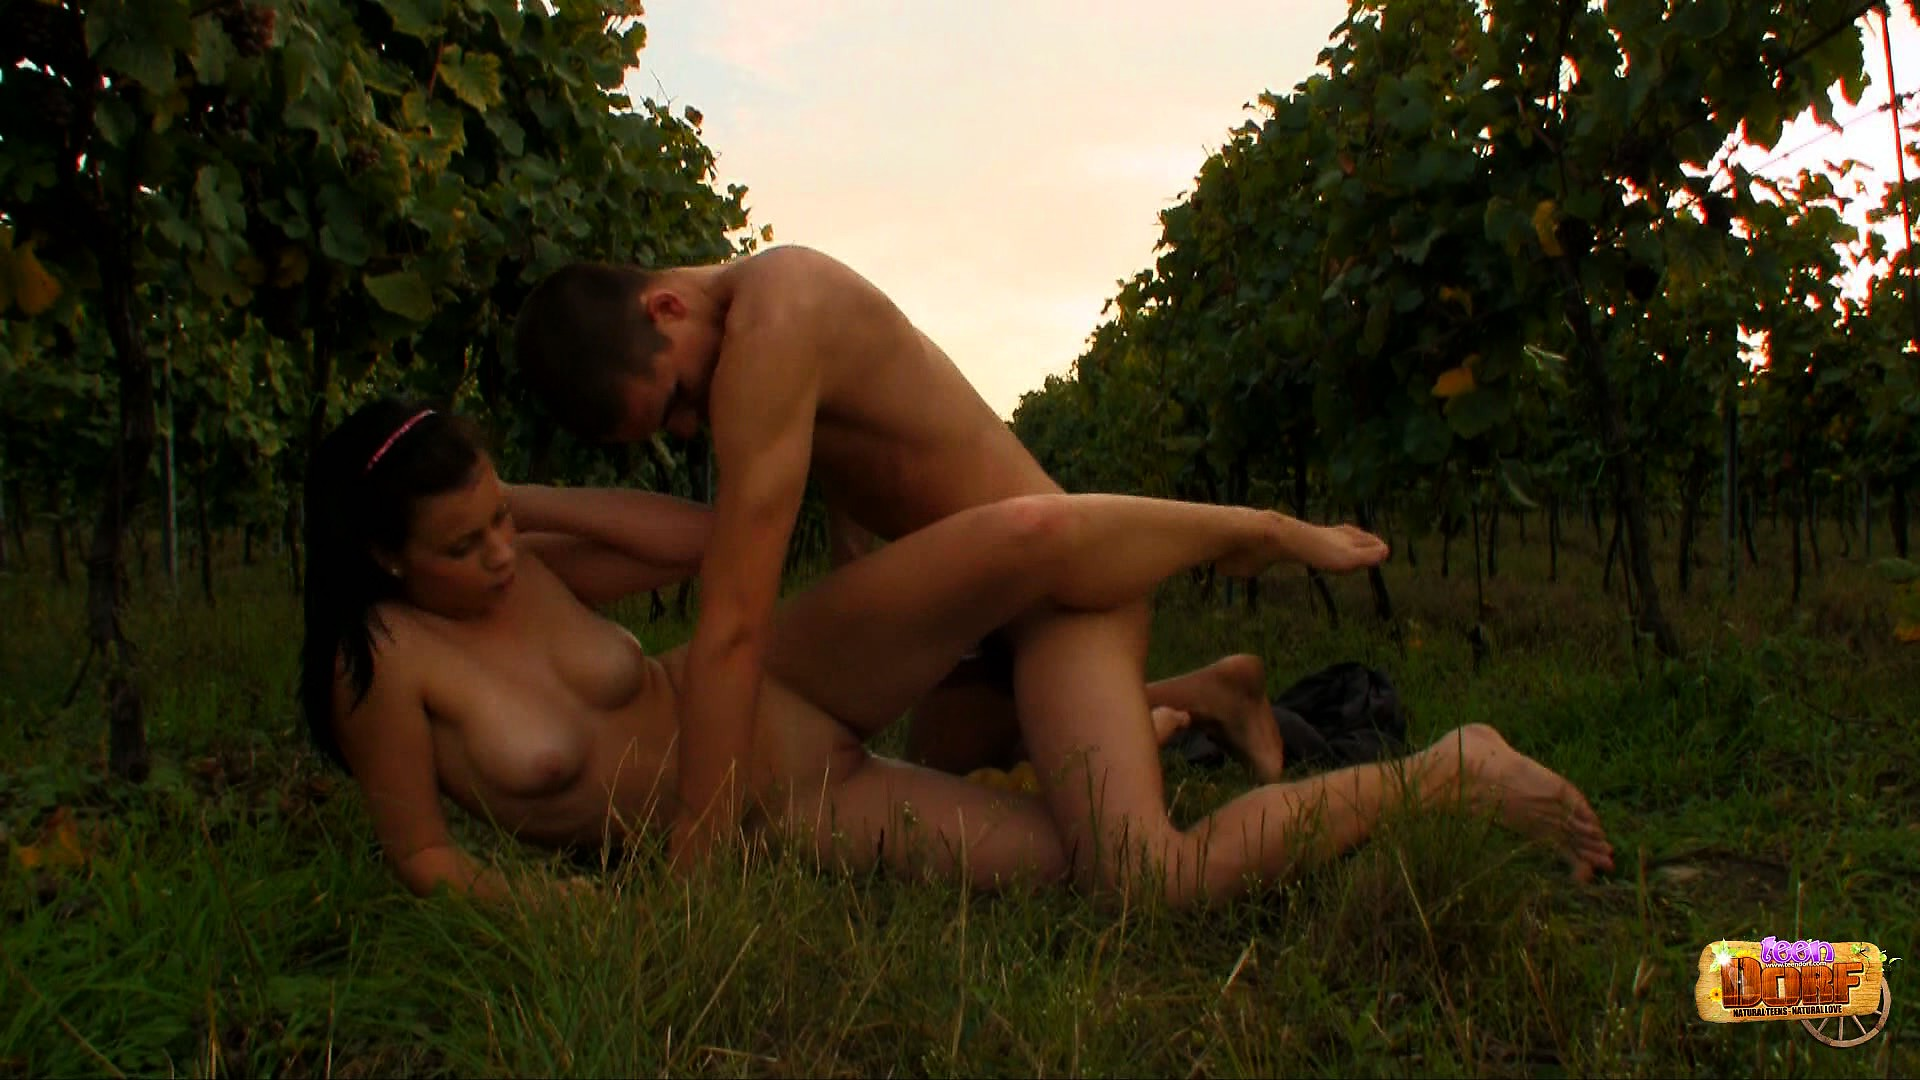 Porno Video of In The Outdoors, Busty Brunette Branislava Enjoys A Hot Sex Adventure With Aleksej